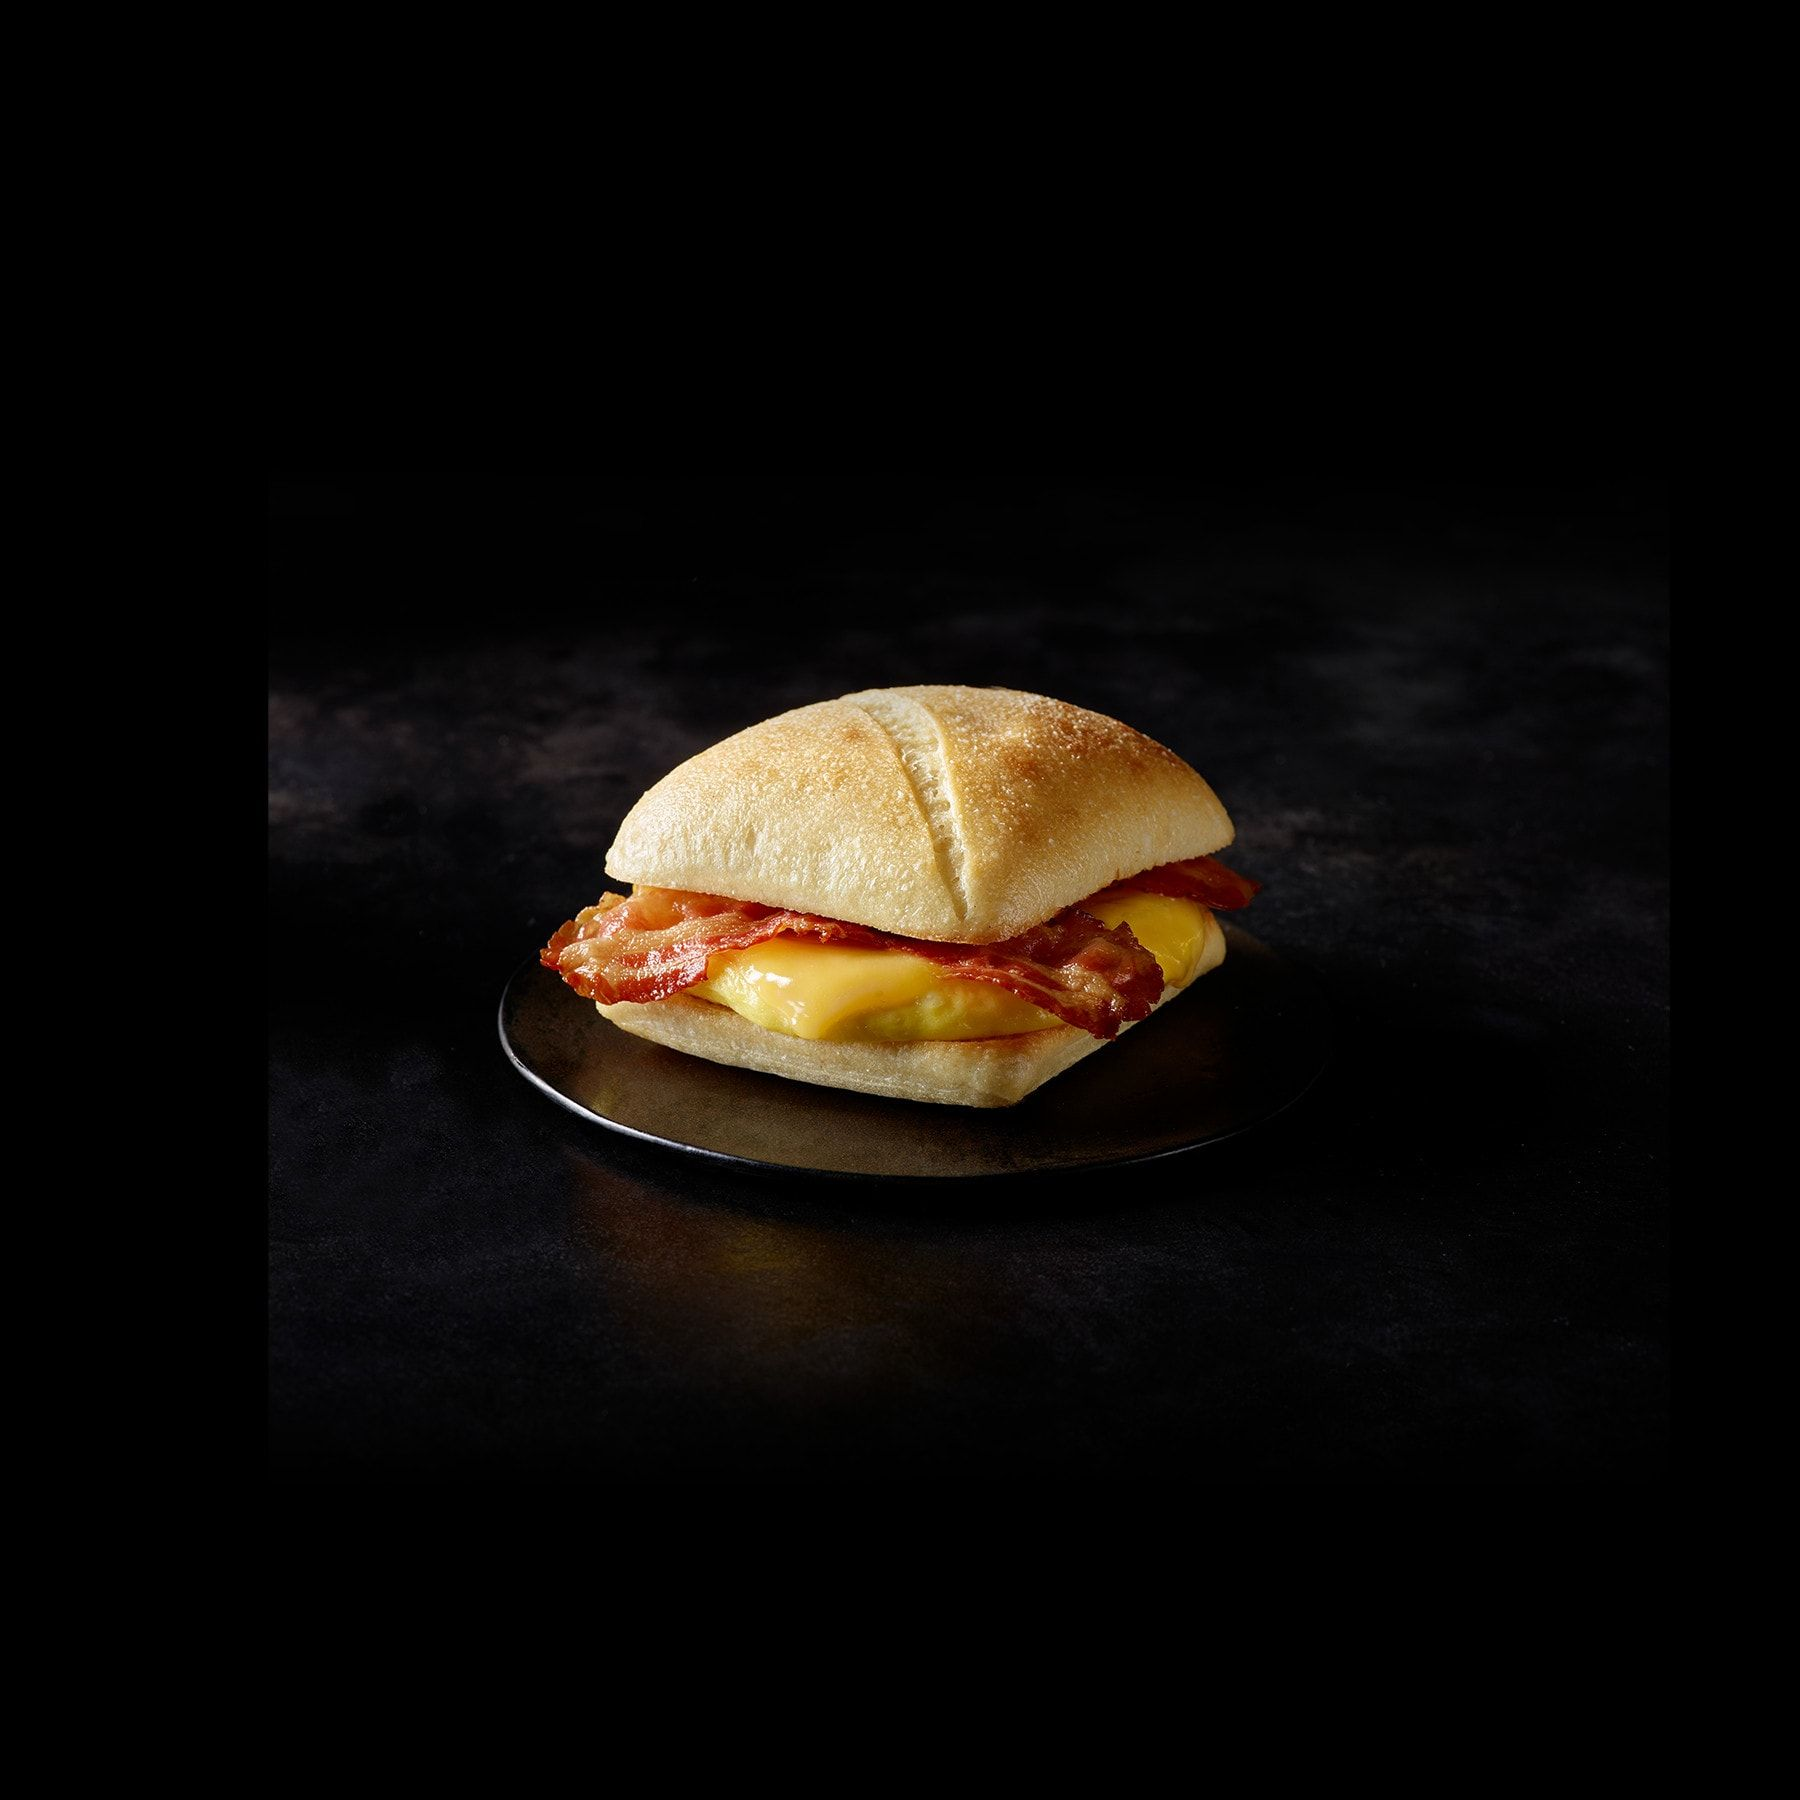 Starbucks - Bacon Gouda & Egg-Nutrition Facts Per Serving (116 g)Calories 370	Calories from Fat 170% Daily Value*Total Fat 19g	29%Saturated Fat 7g	35%Trans Fat 0g	Cholesterol 165mg	55%Sodium 850mg	35%Total Carbohydrate 32g	11%Dietary Fiber 1g	4%Sugars 1g	Protein 18g #eggnutritionfacts